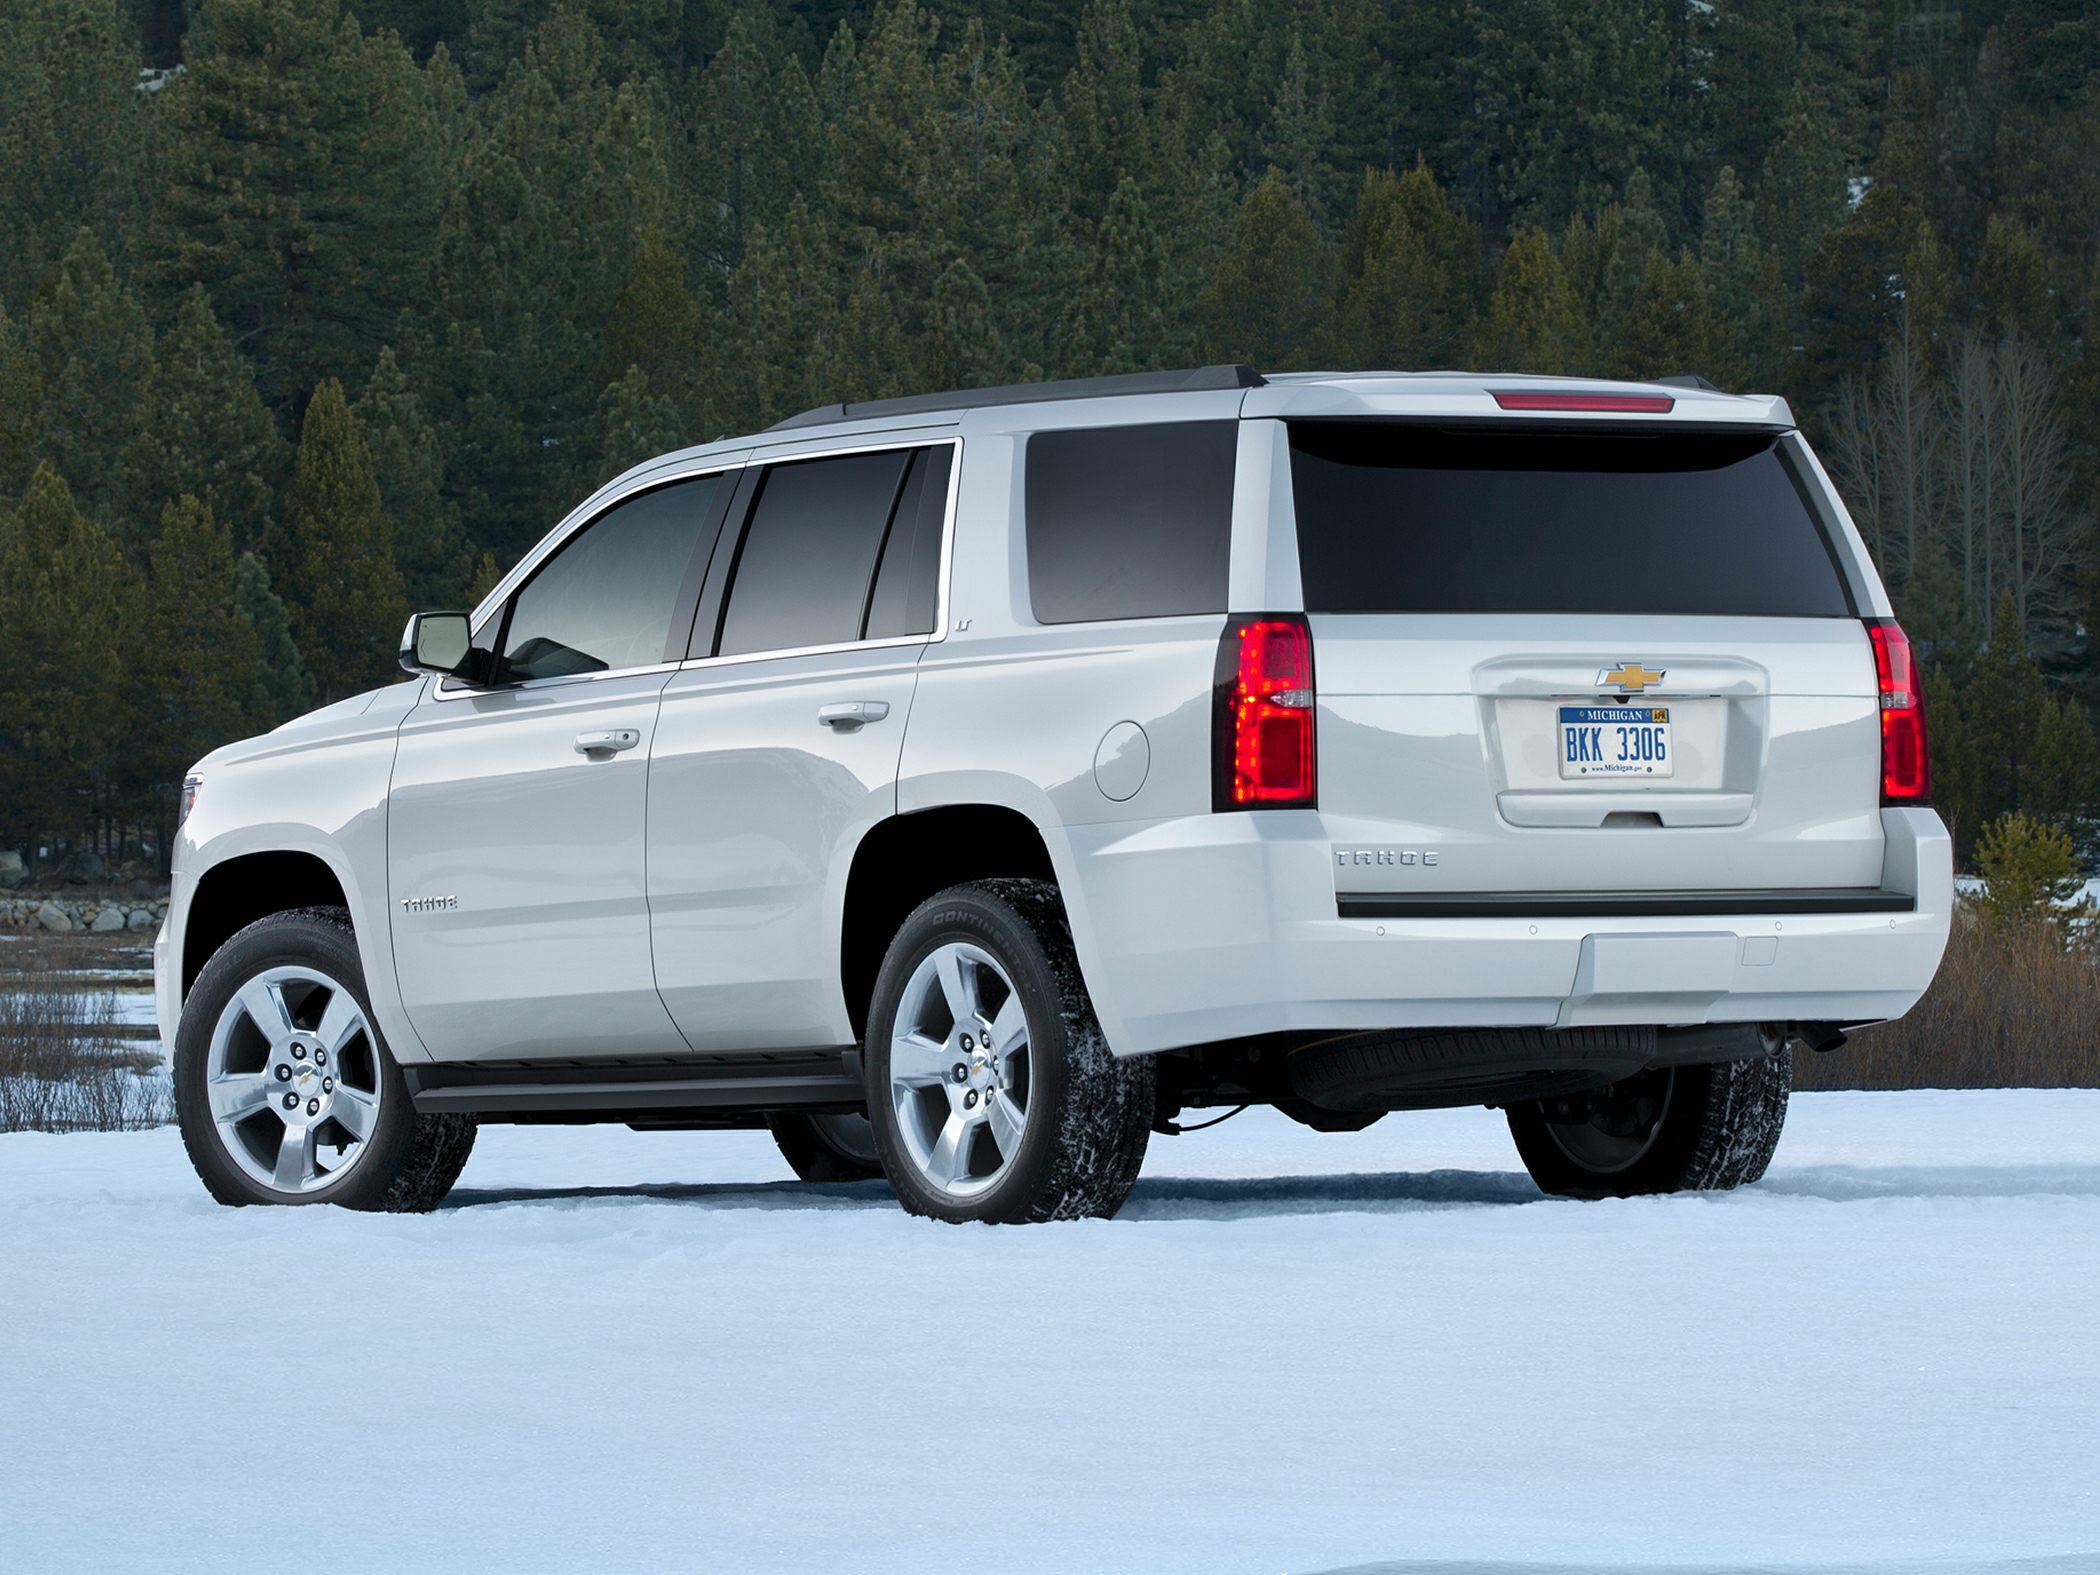 2017 chevrolet tahoe deals prices incentives leases overview carsdirect. Black Bedroom Furniture Sets. Home Design Ideas